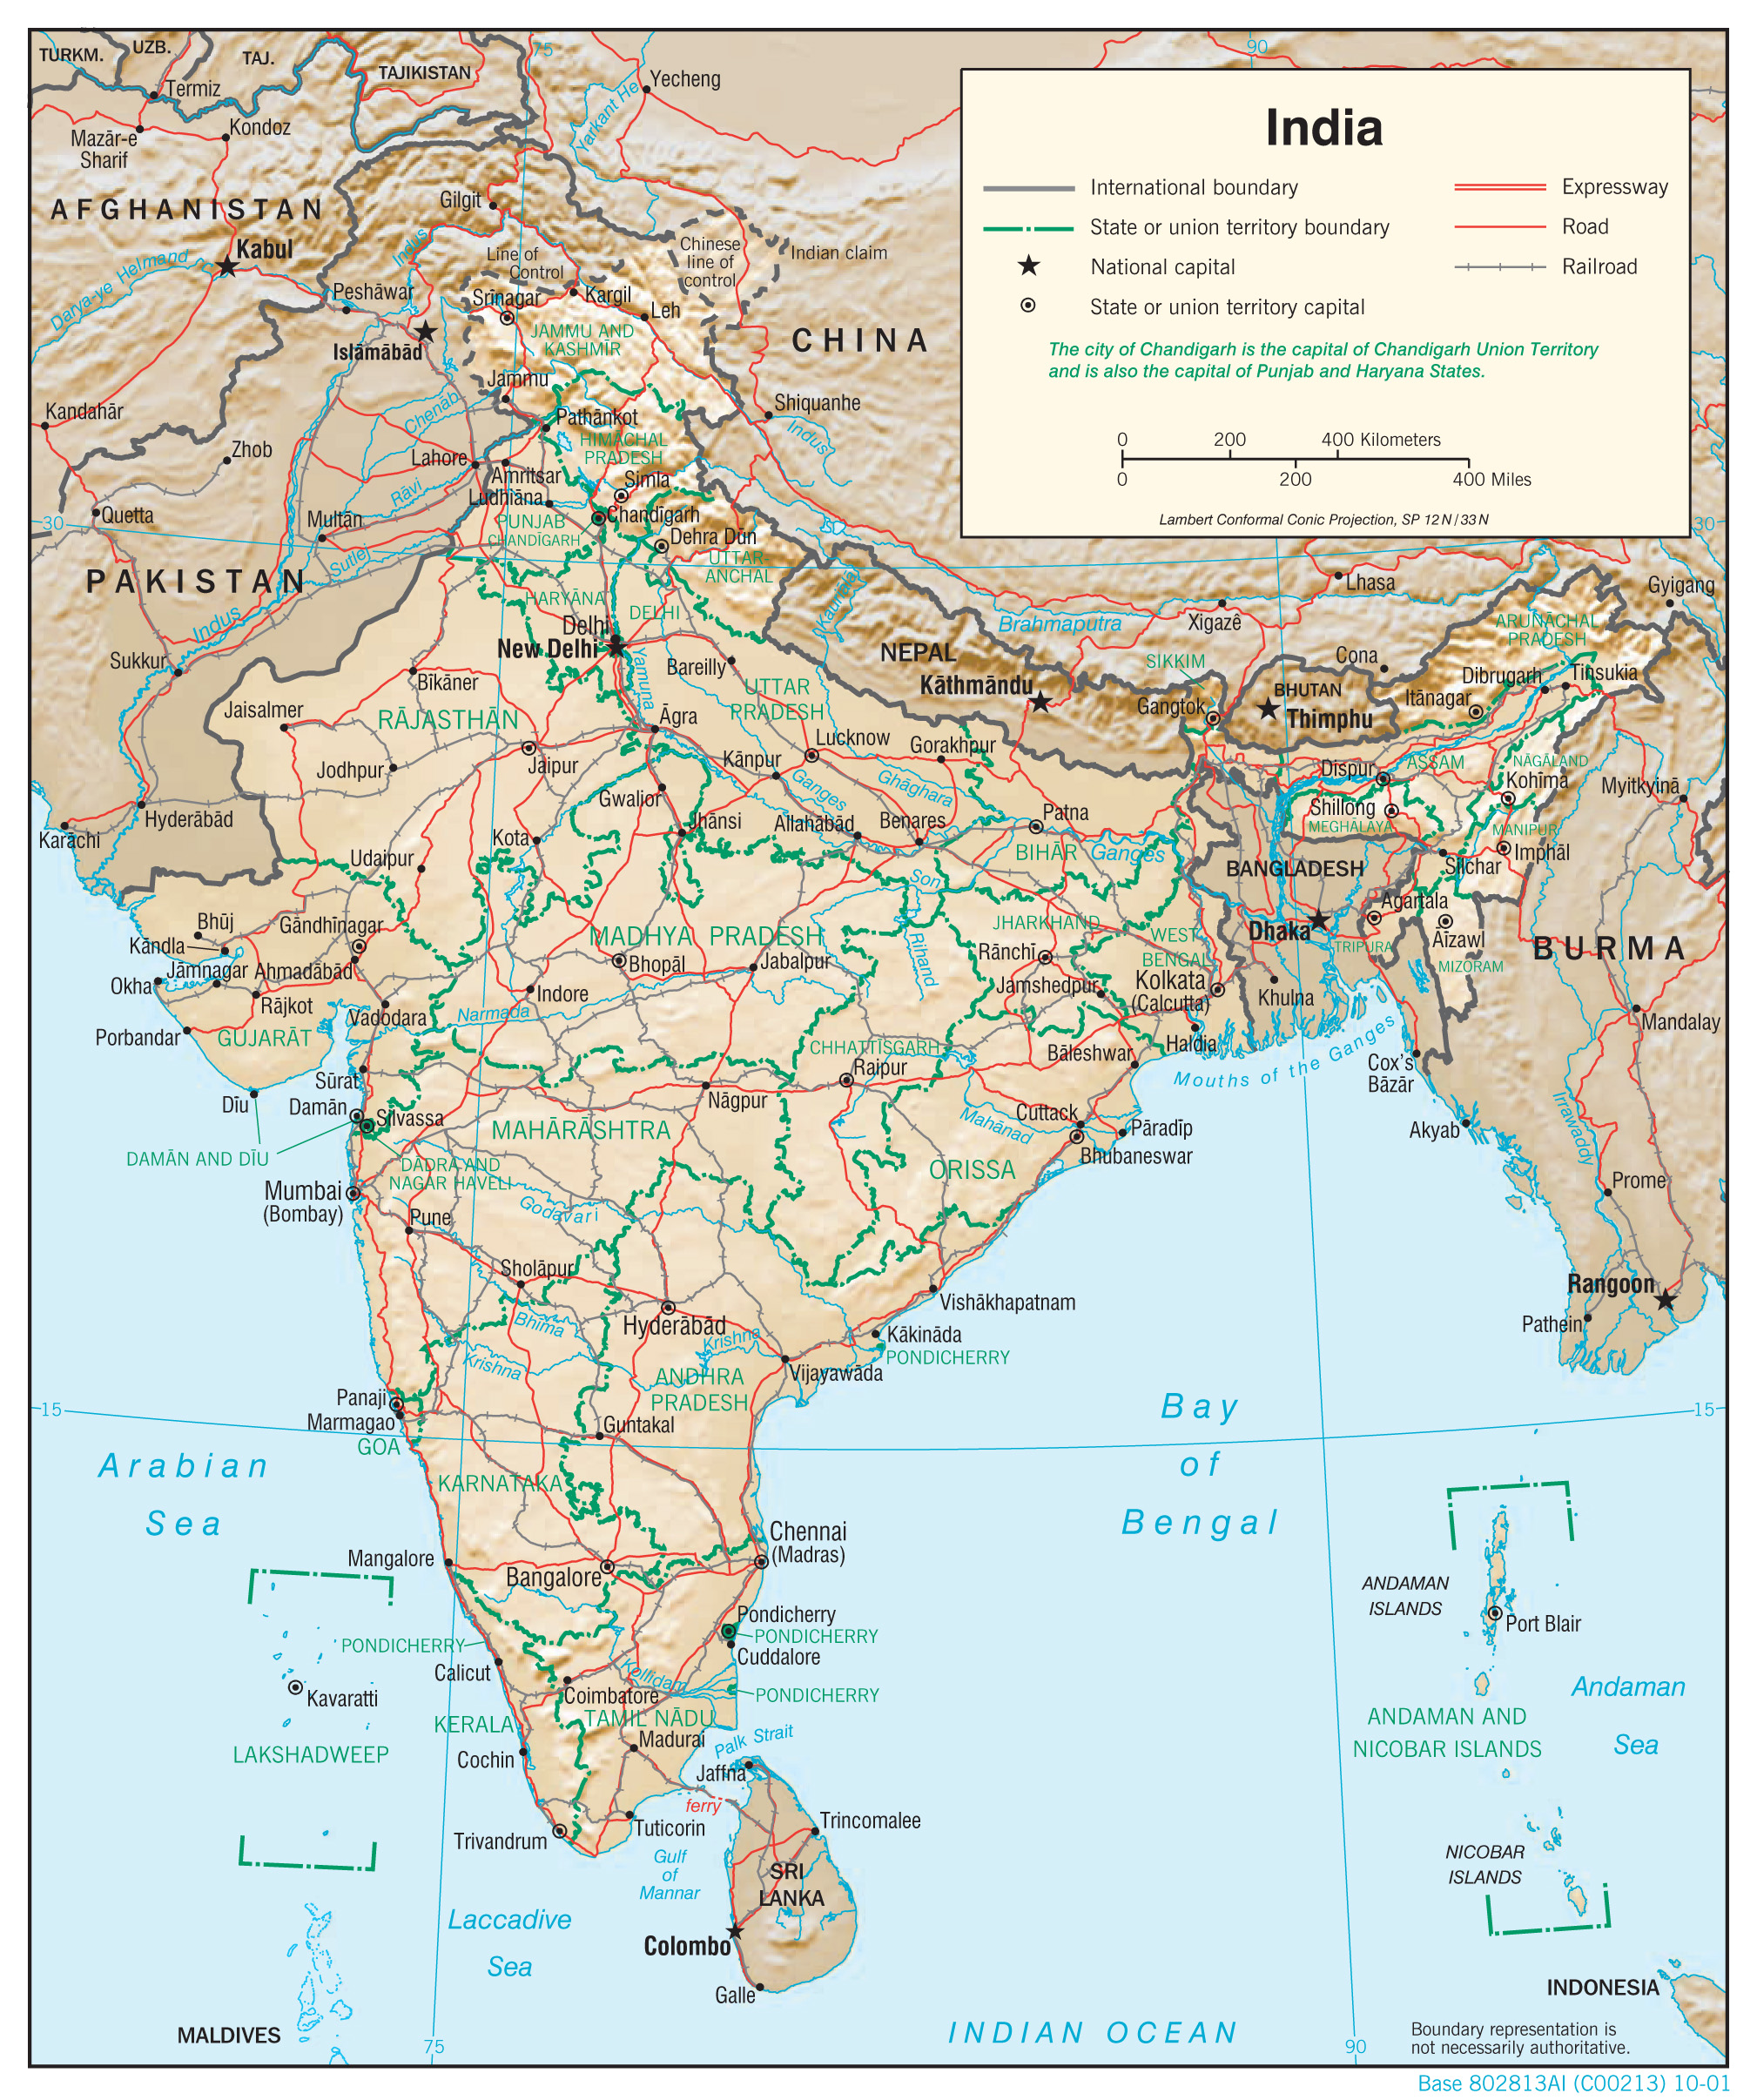 India Maps - Perry-Castañeda Map Collection - UT Library